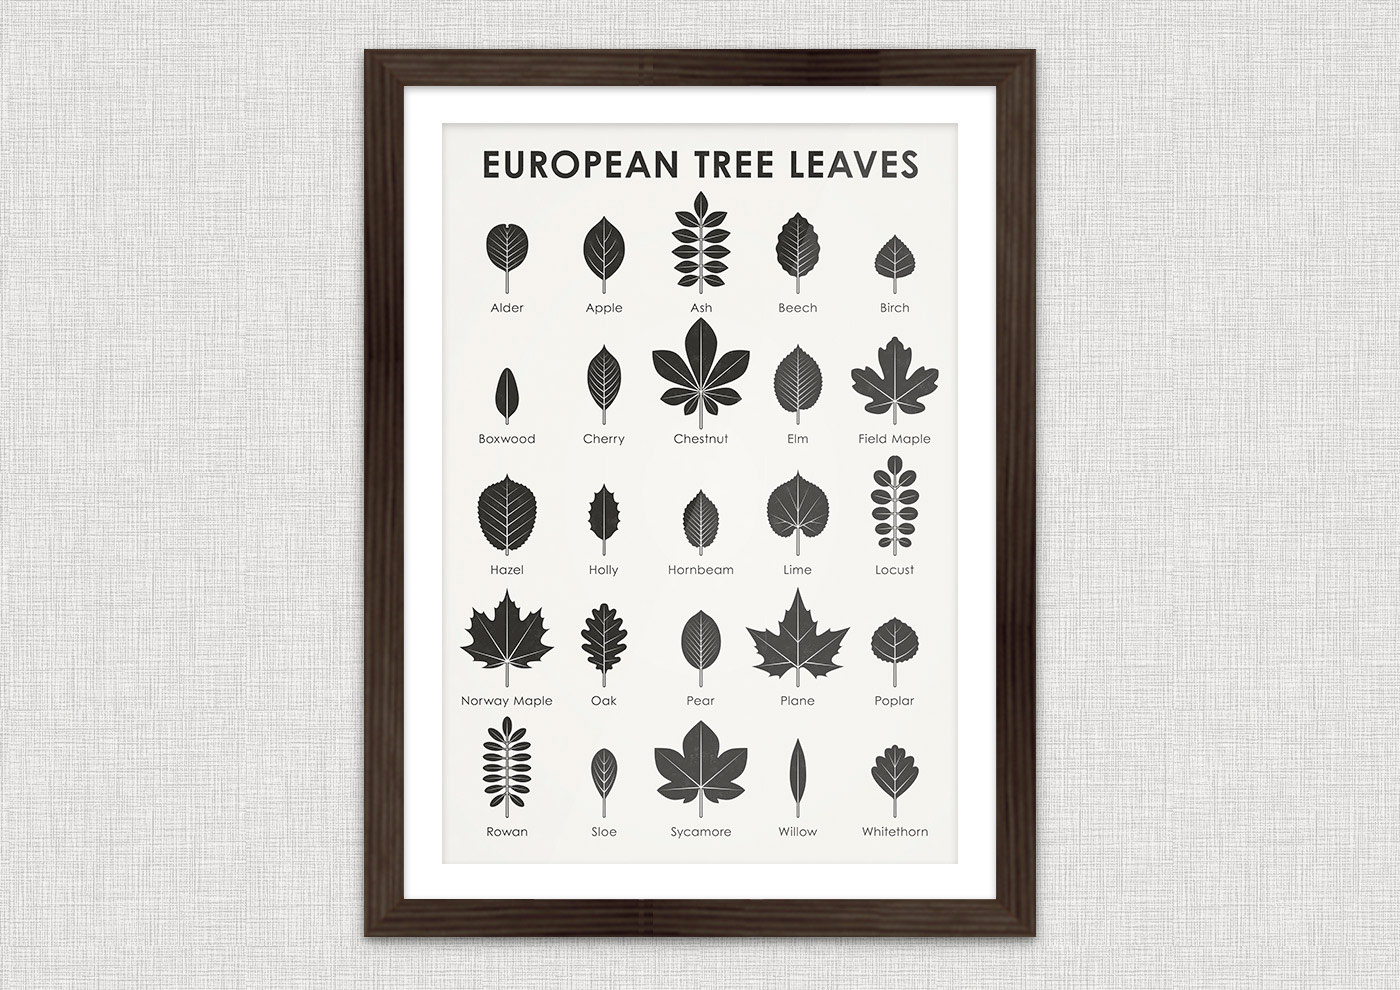 A practical infographic sheet that helps you to easily identify, learn and remember the leaf shapes of 25 common European trees, such as alder, apple, ash, beech, birch, boxwood, cherry, chestnut, elm, field maple, hazel, holly, hornbeam, lime, locust, norway maple, oak, pear, plane, poplar, rowan, sloe, sycamore, willow or whitethorn.